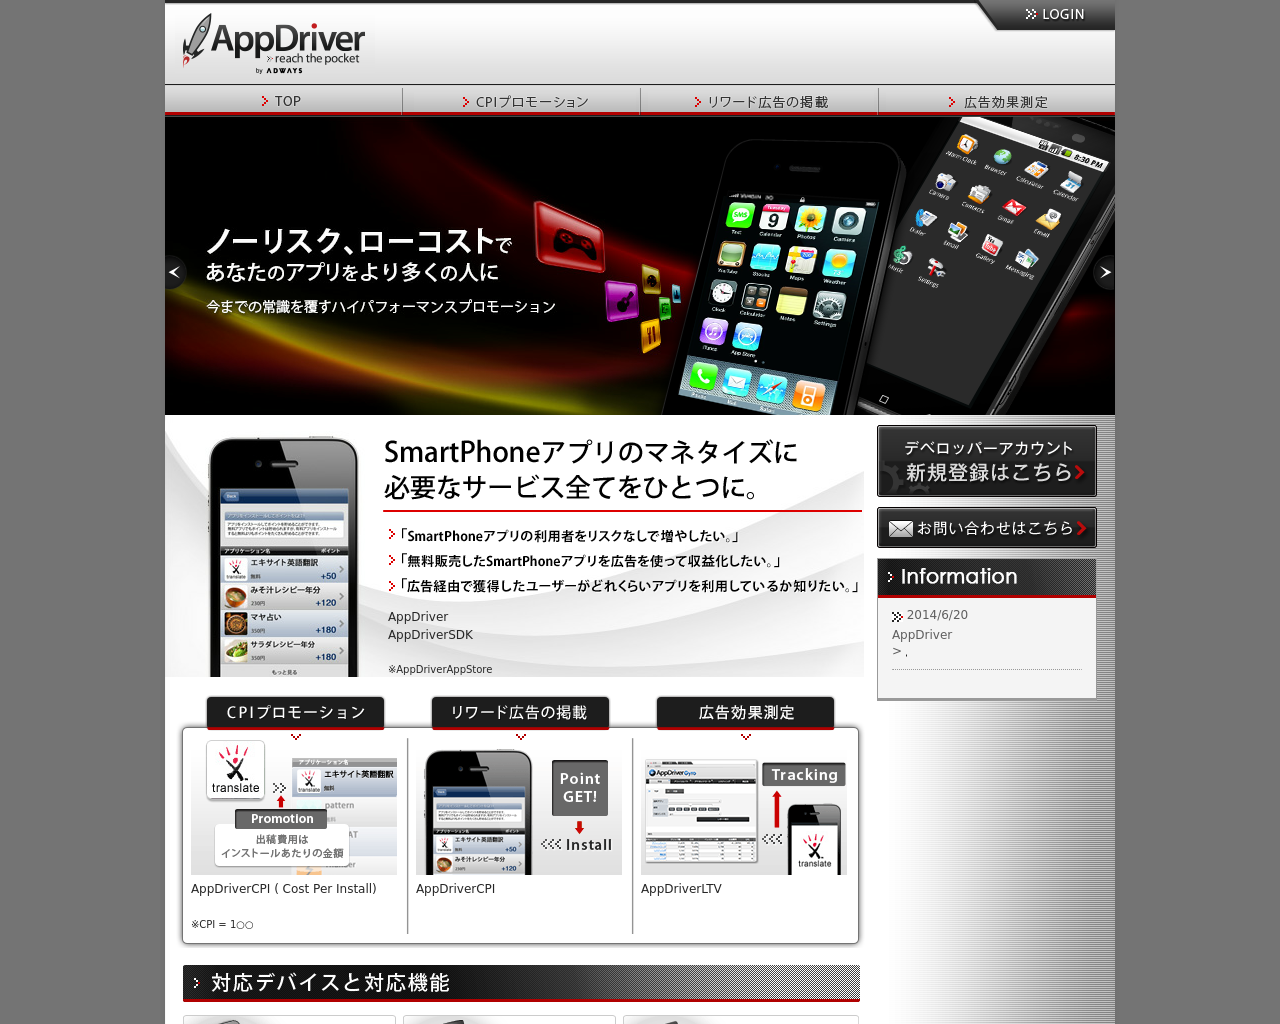 AppDriver-Advertising-Reviews-Pricing